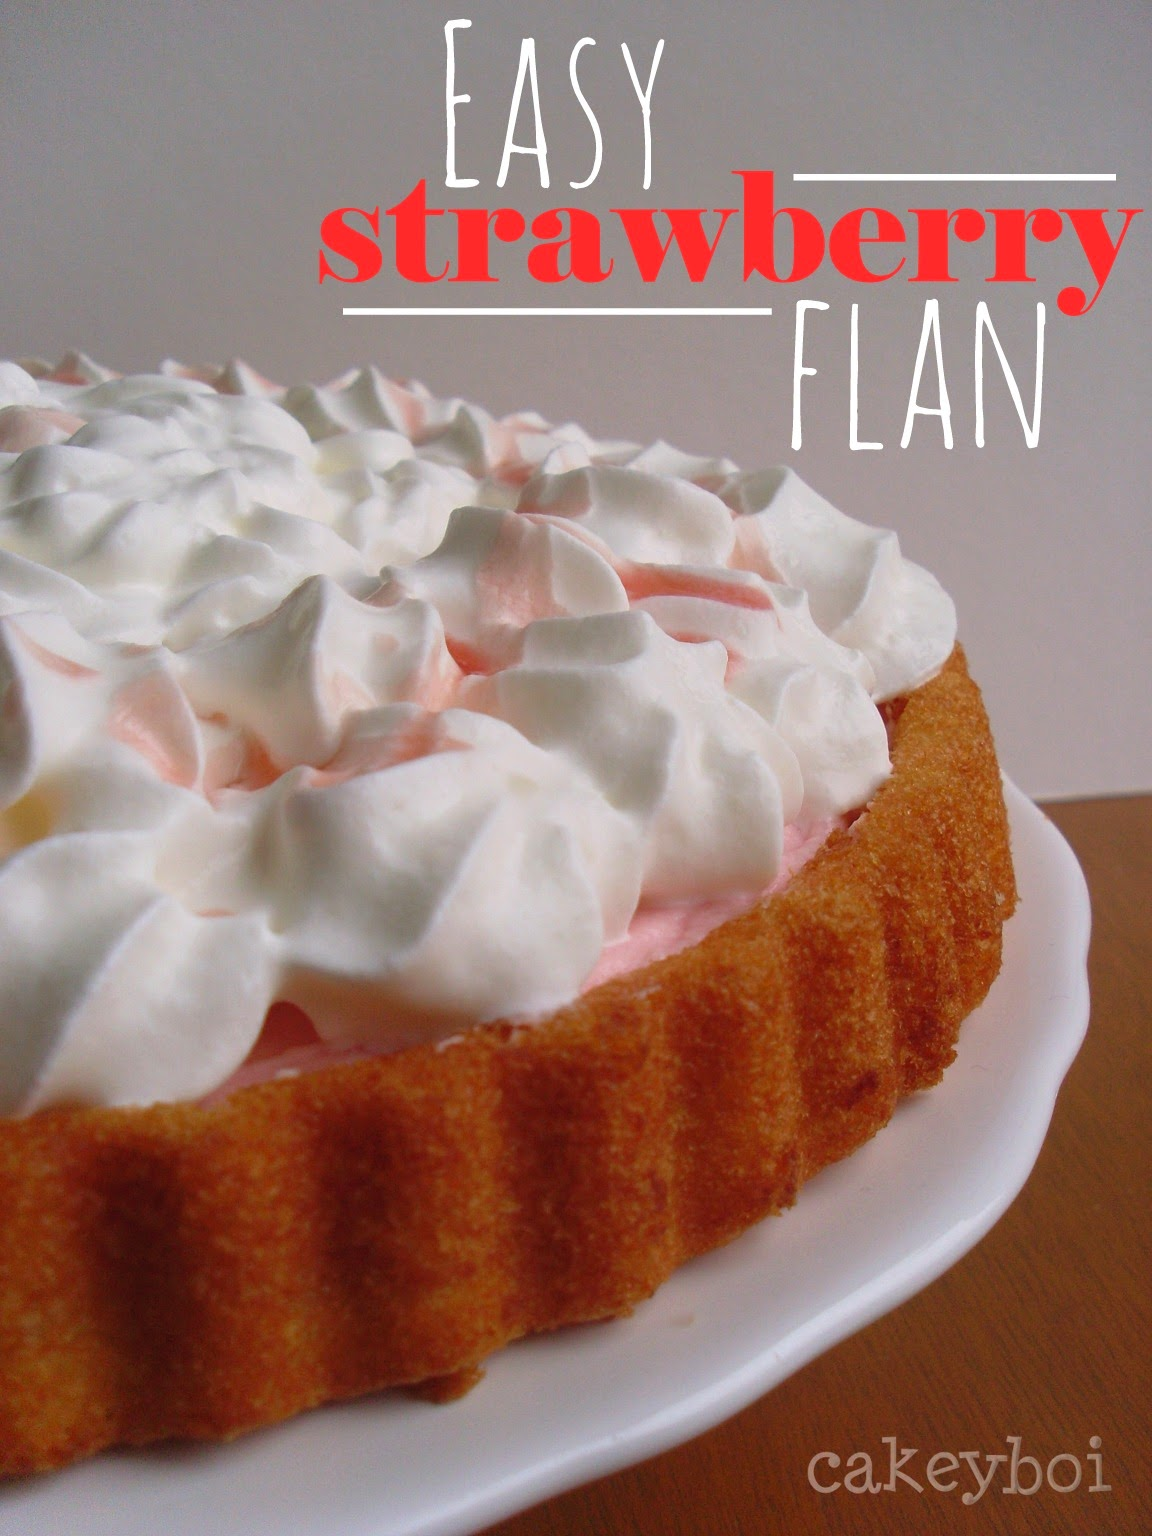 Fastest Strawberry Flan made in under 30 minutes!